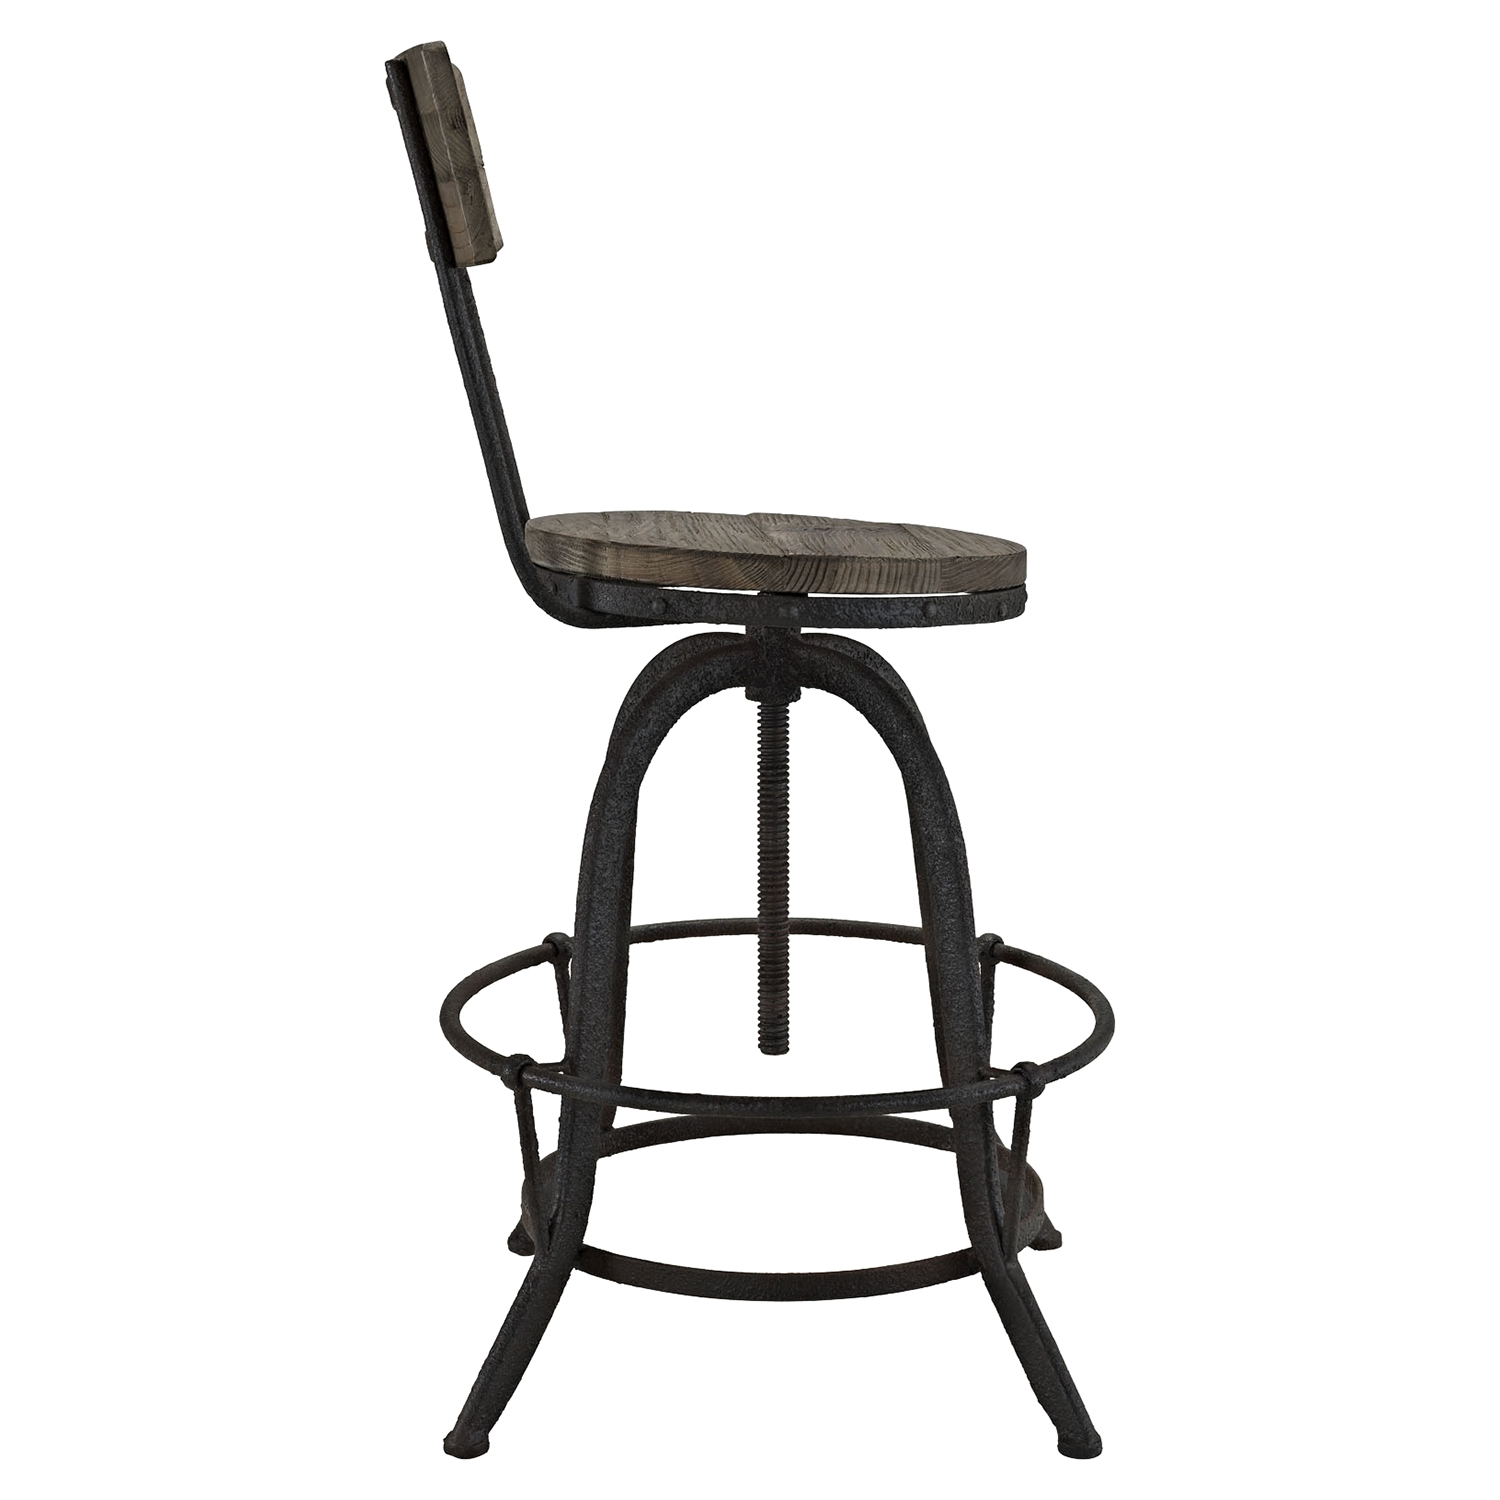 Procure Bar Stool - Wood Top, Brown (Set of 2) - EEI-1605-BRN-SET